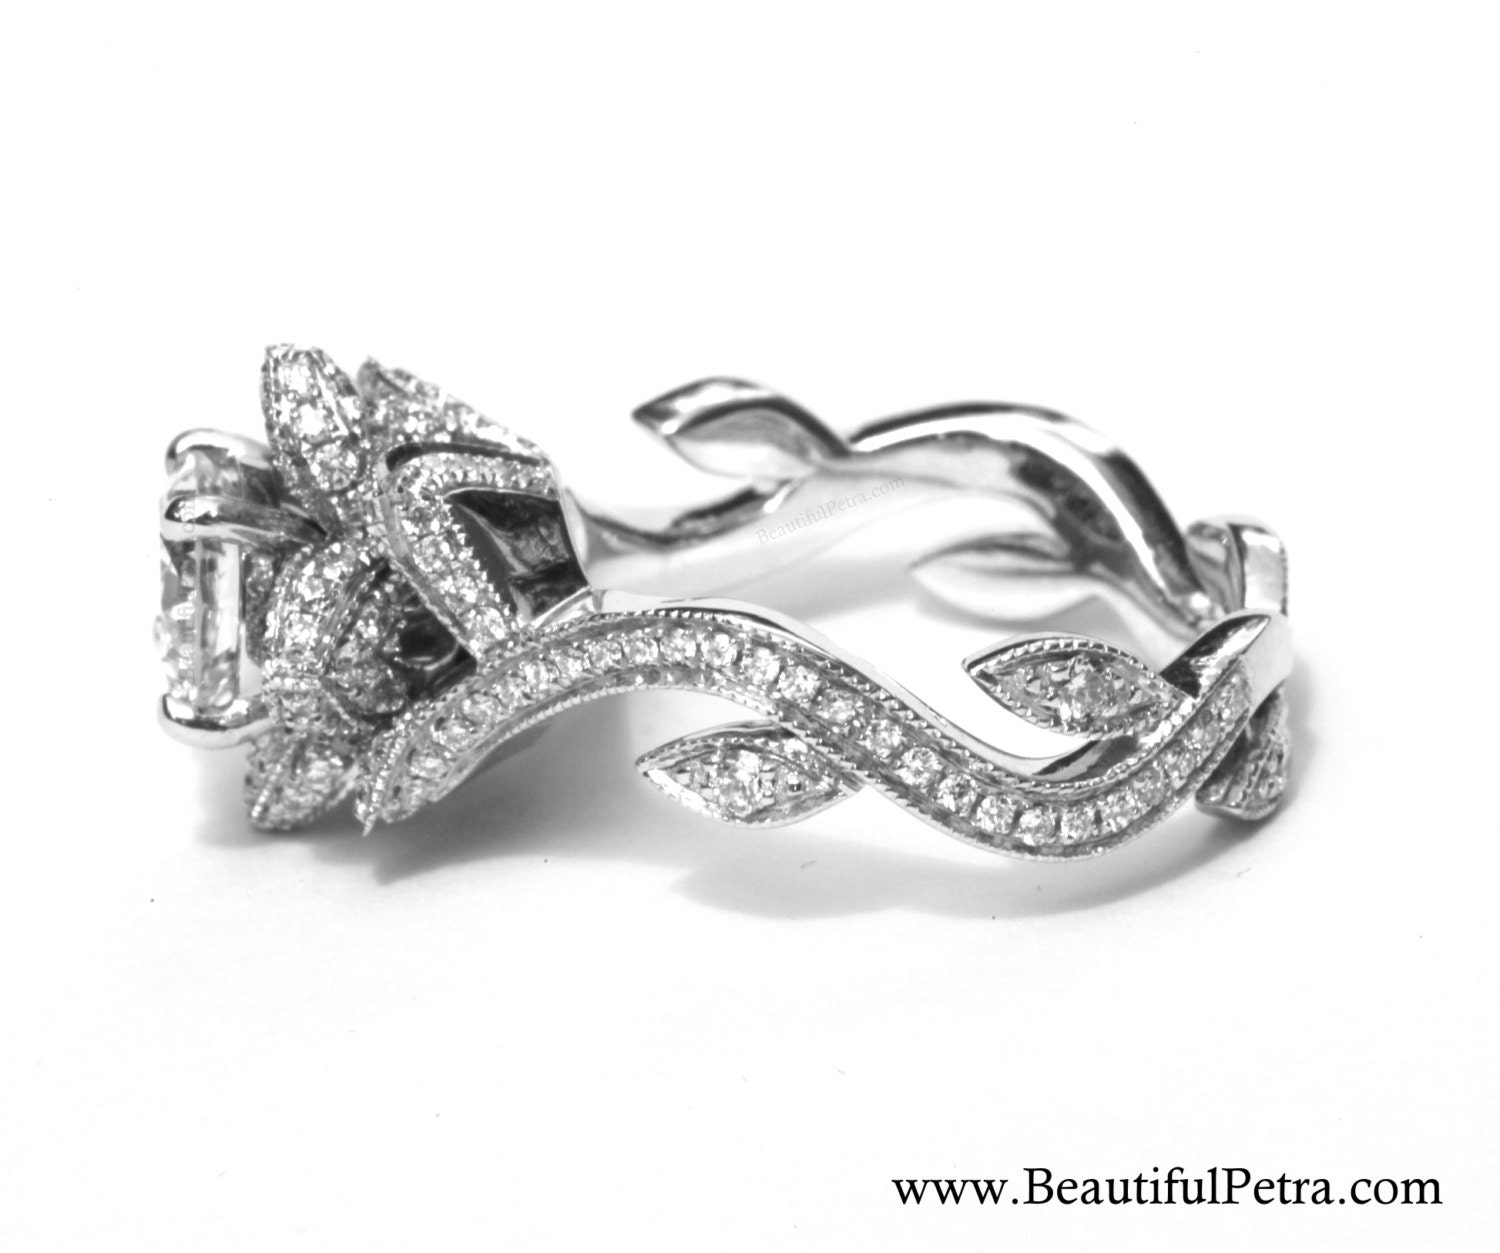 infinity diamond patented unique ever il gorgeous beautiful engagement ring design petra zoom blooming flower fullxfull rose lotus rings listing love